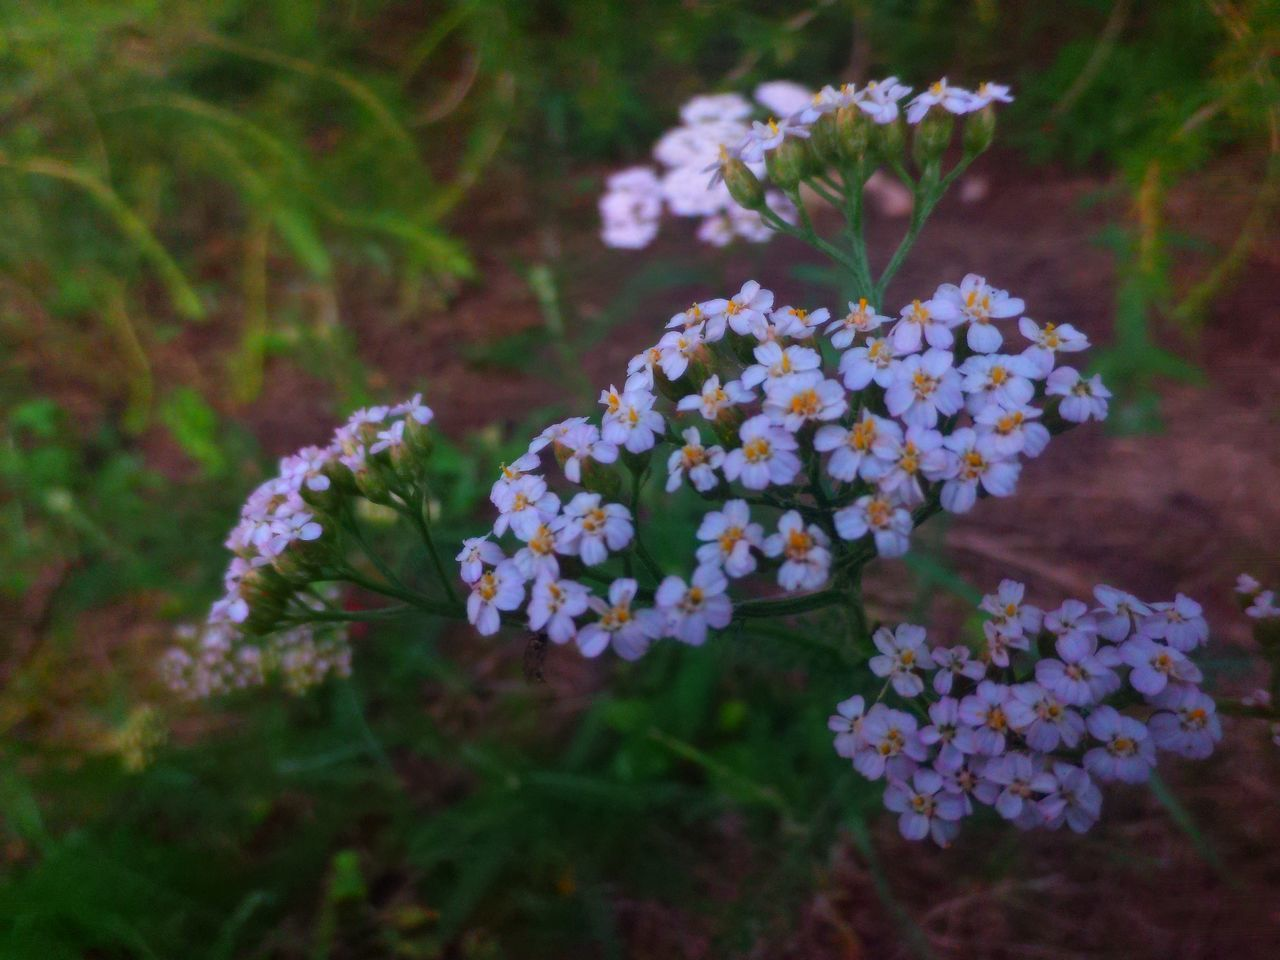 flower, nature, beauty in nature, fragility, plant, freshness, no people, growth, lantana camara, outdoors, day, flower head, close-up, lilac, blooming